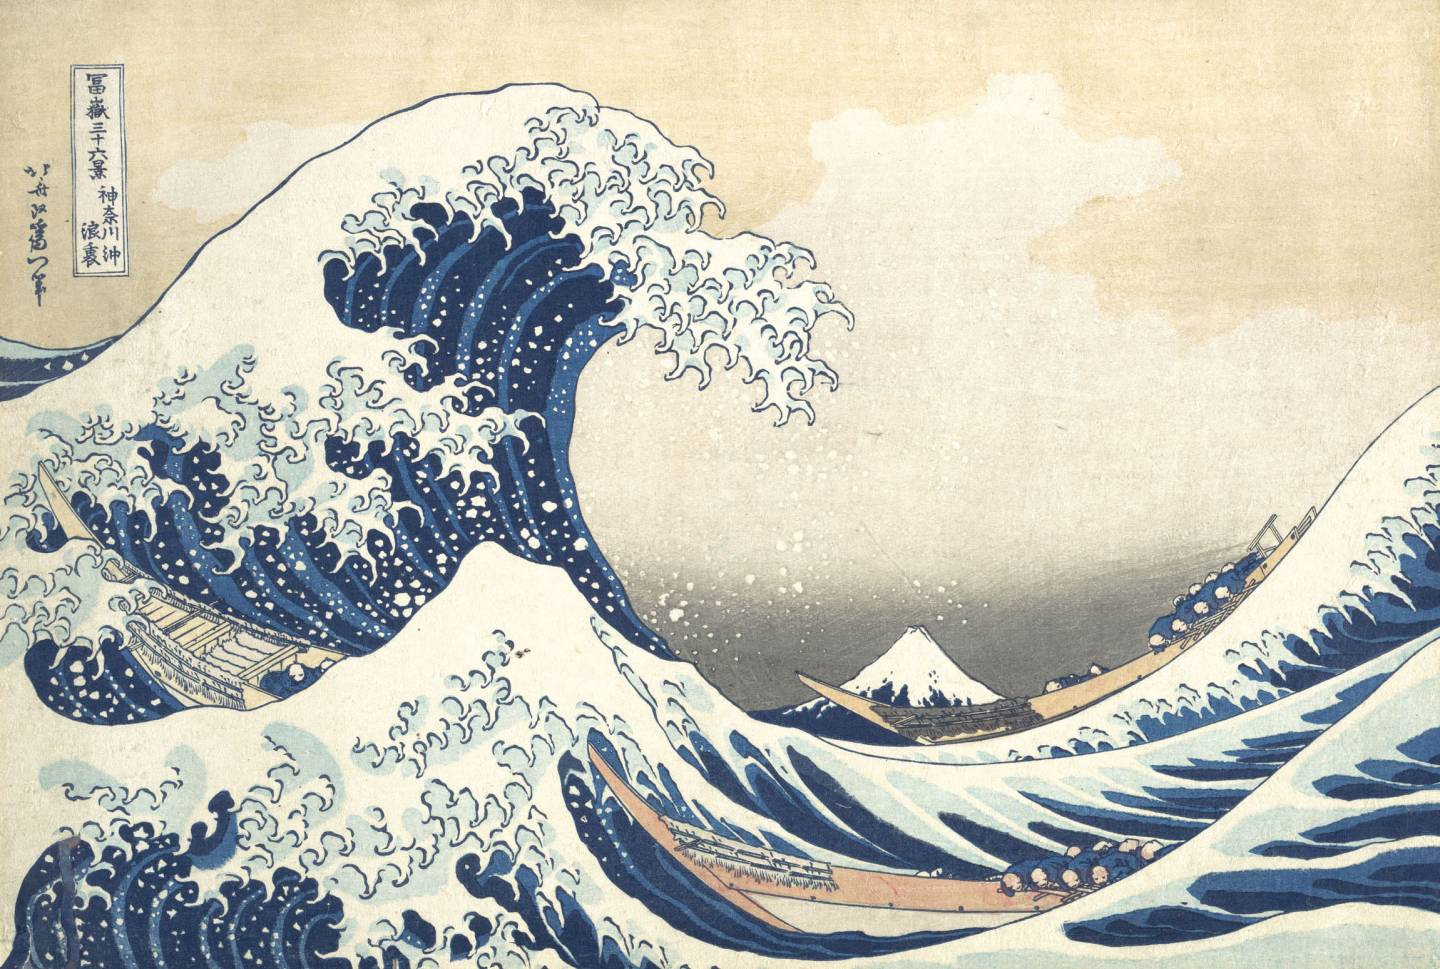 Lindsay | Drawing Japan with the Old Man Mad About Drawing | Katsushika Hokusai, Thirty-six Views of Mount Fuji: The Great Wave off Kanagawa, c. 1830